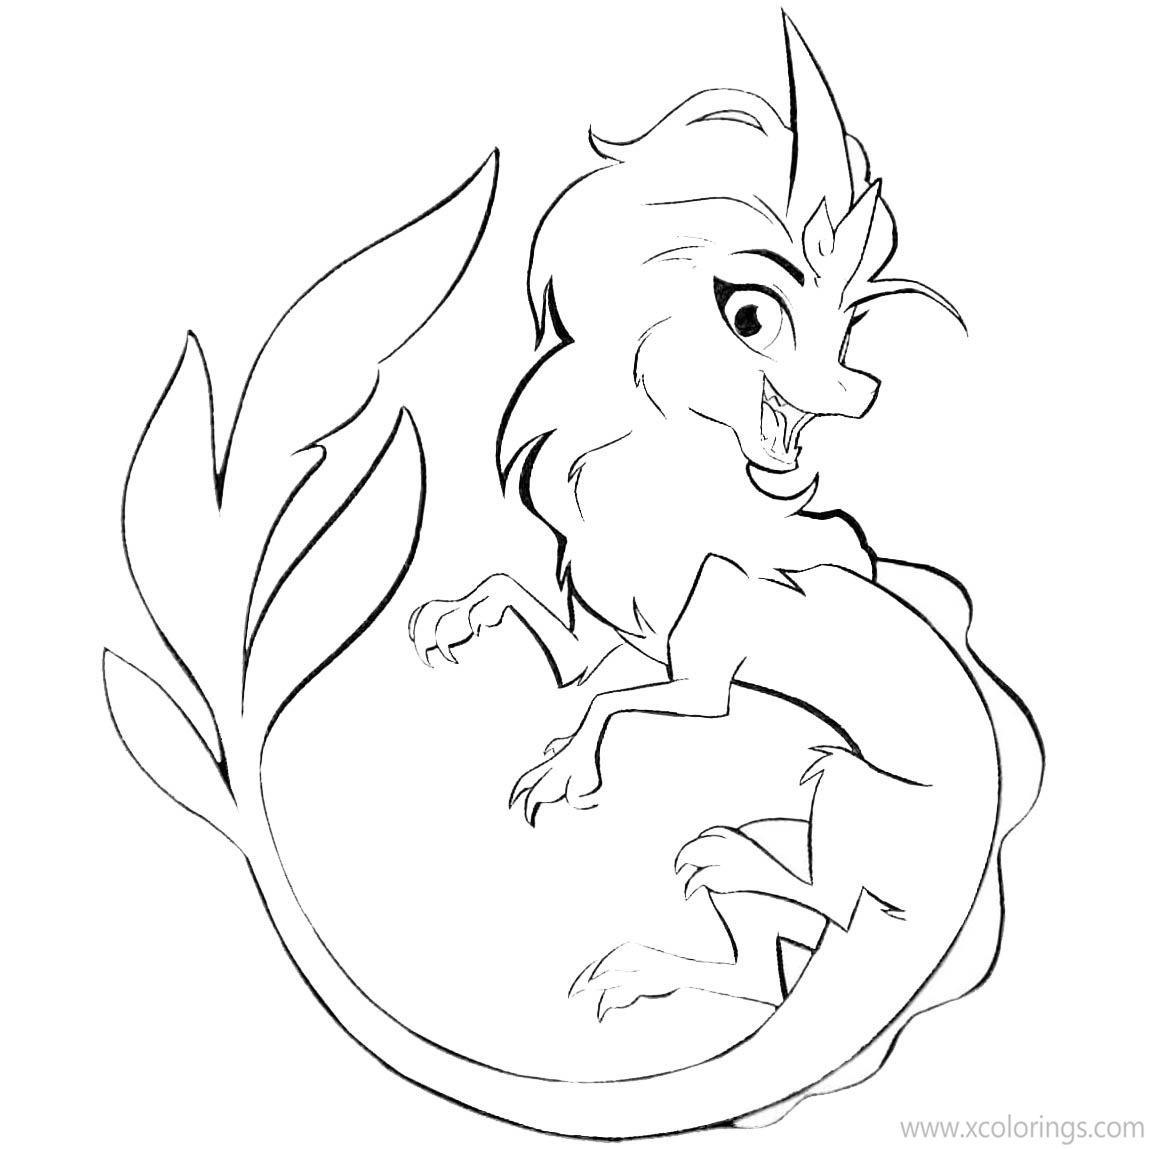 Raya And The Last Dragon Coloring Pages Dragon Sisu - XColorings.com